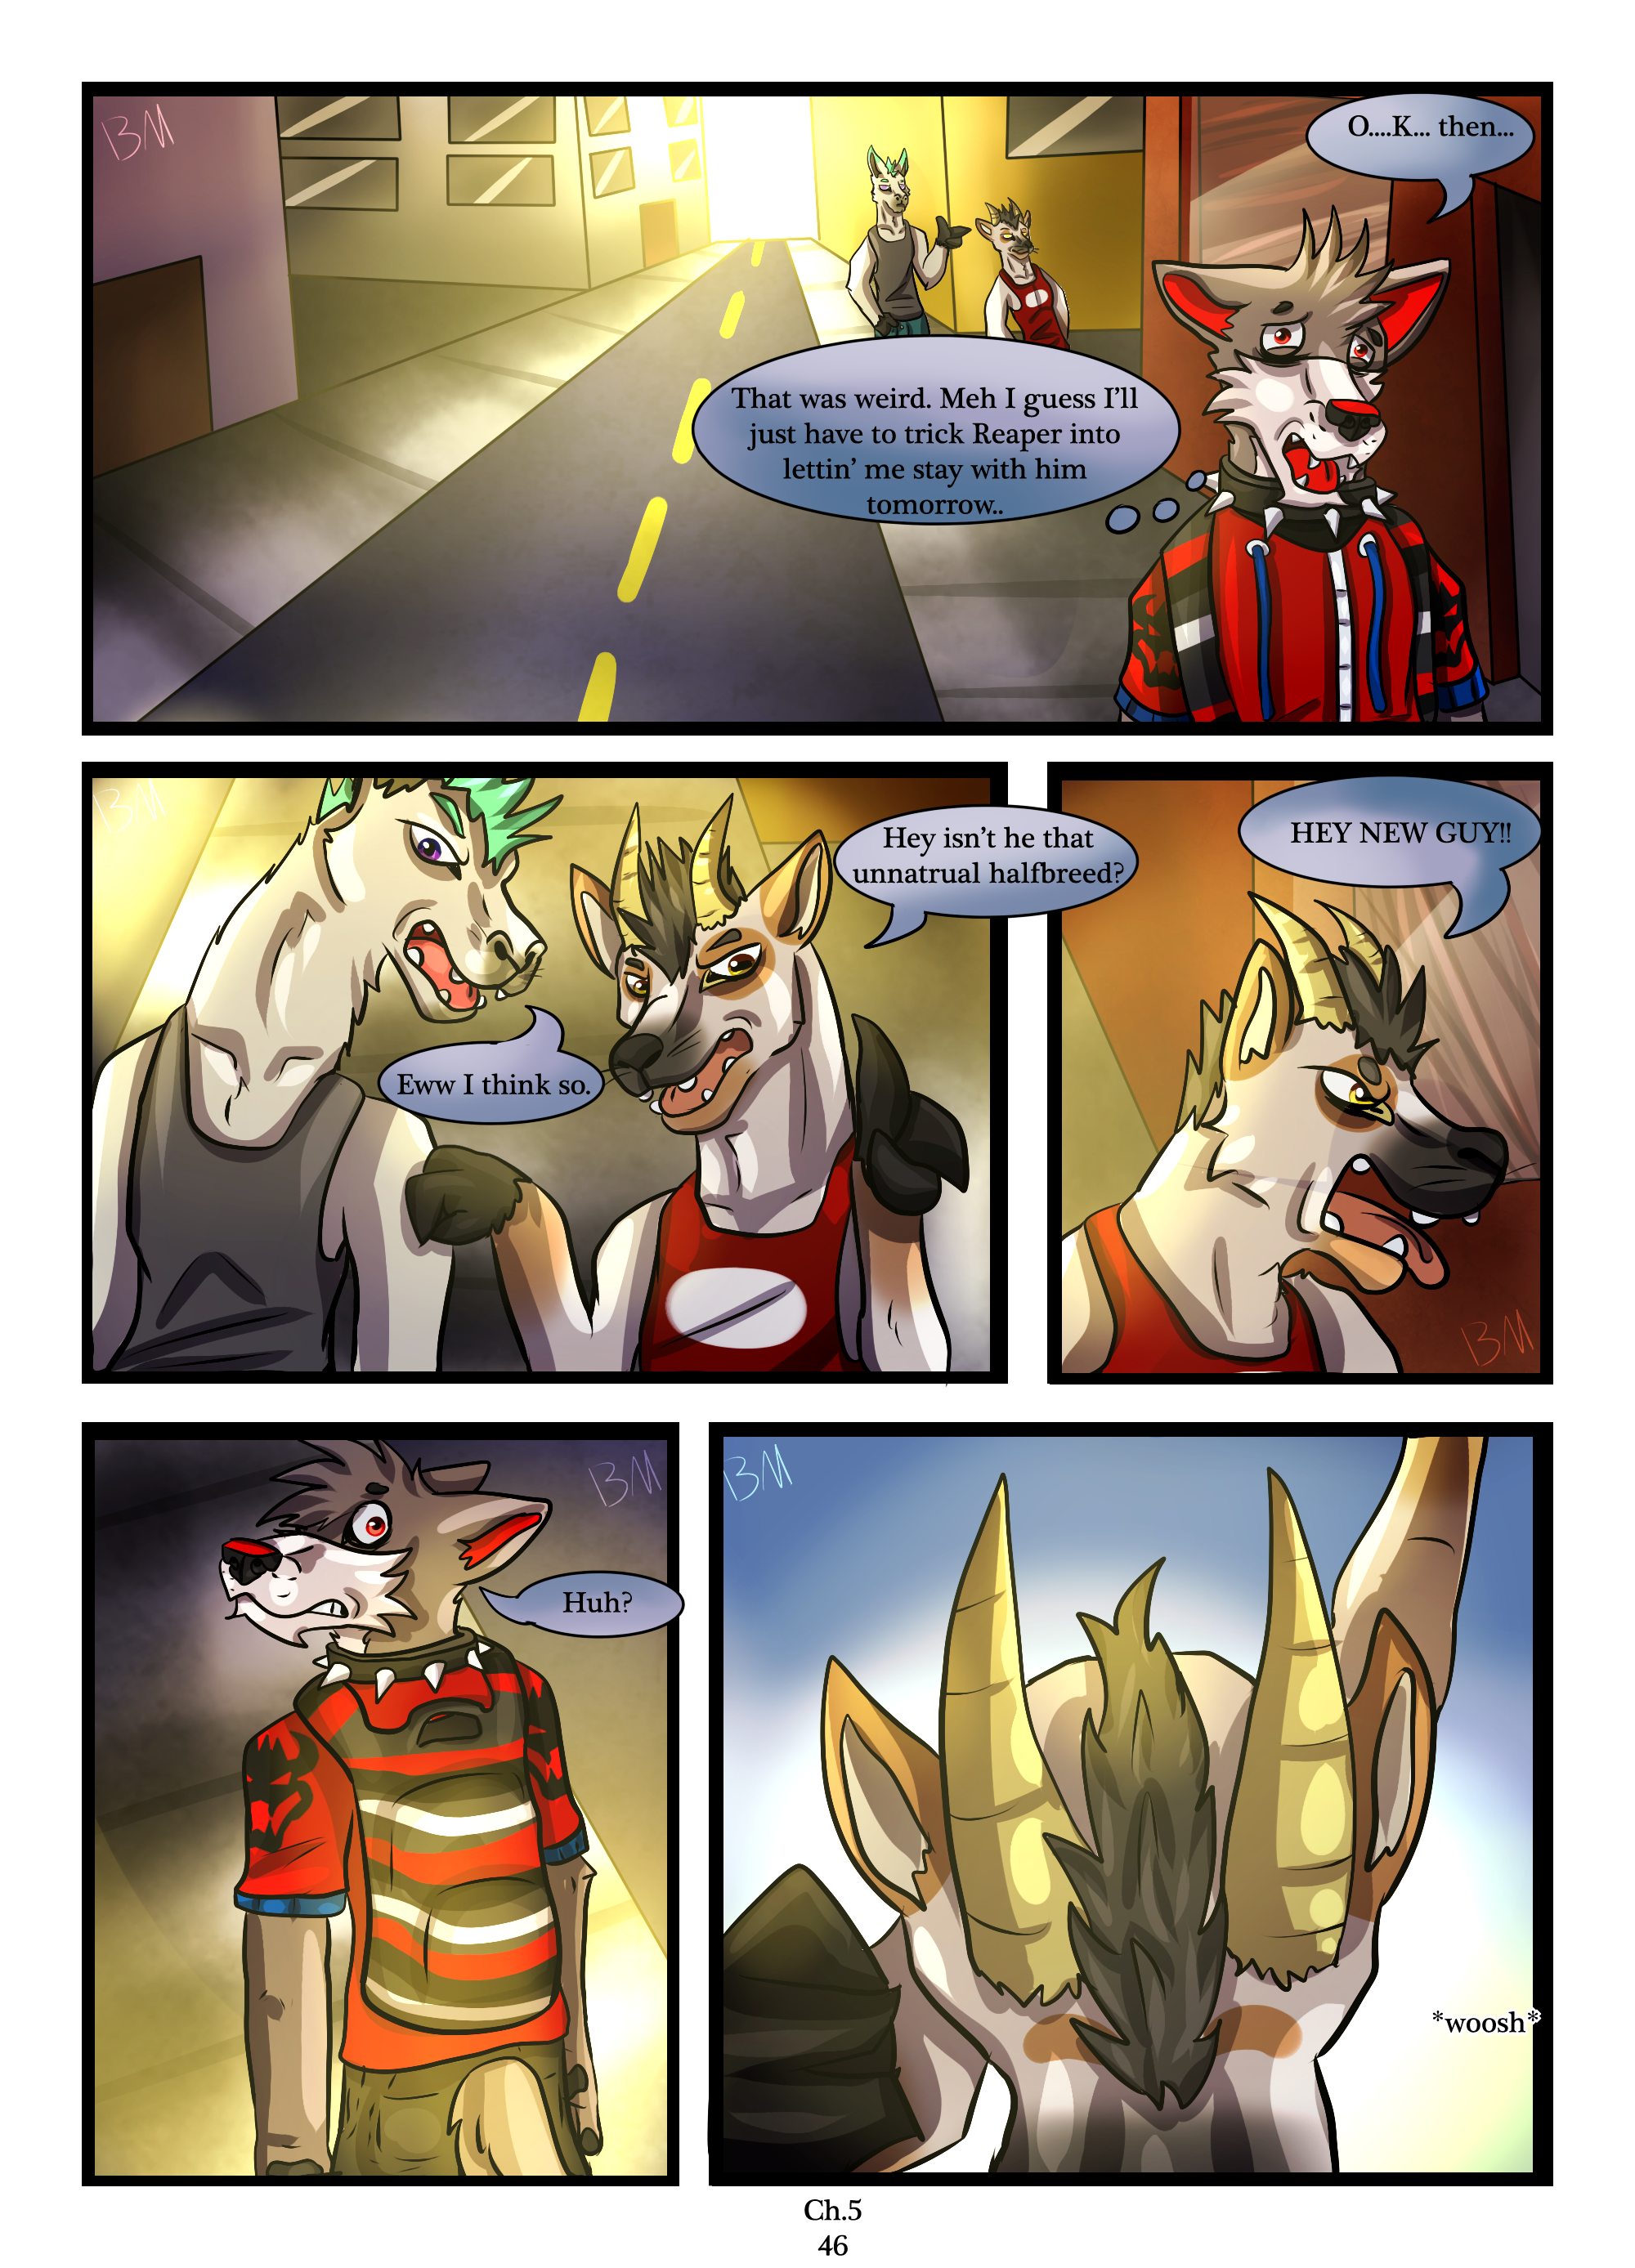 Ch. 5 page 46